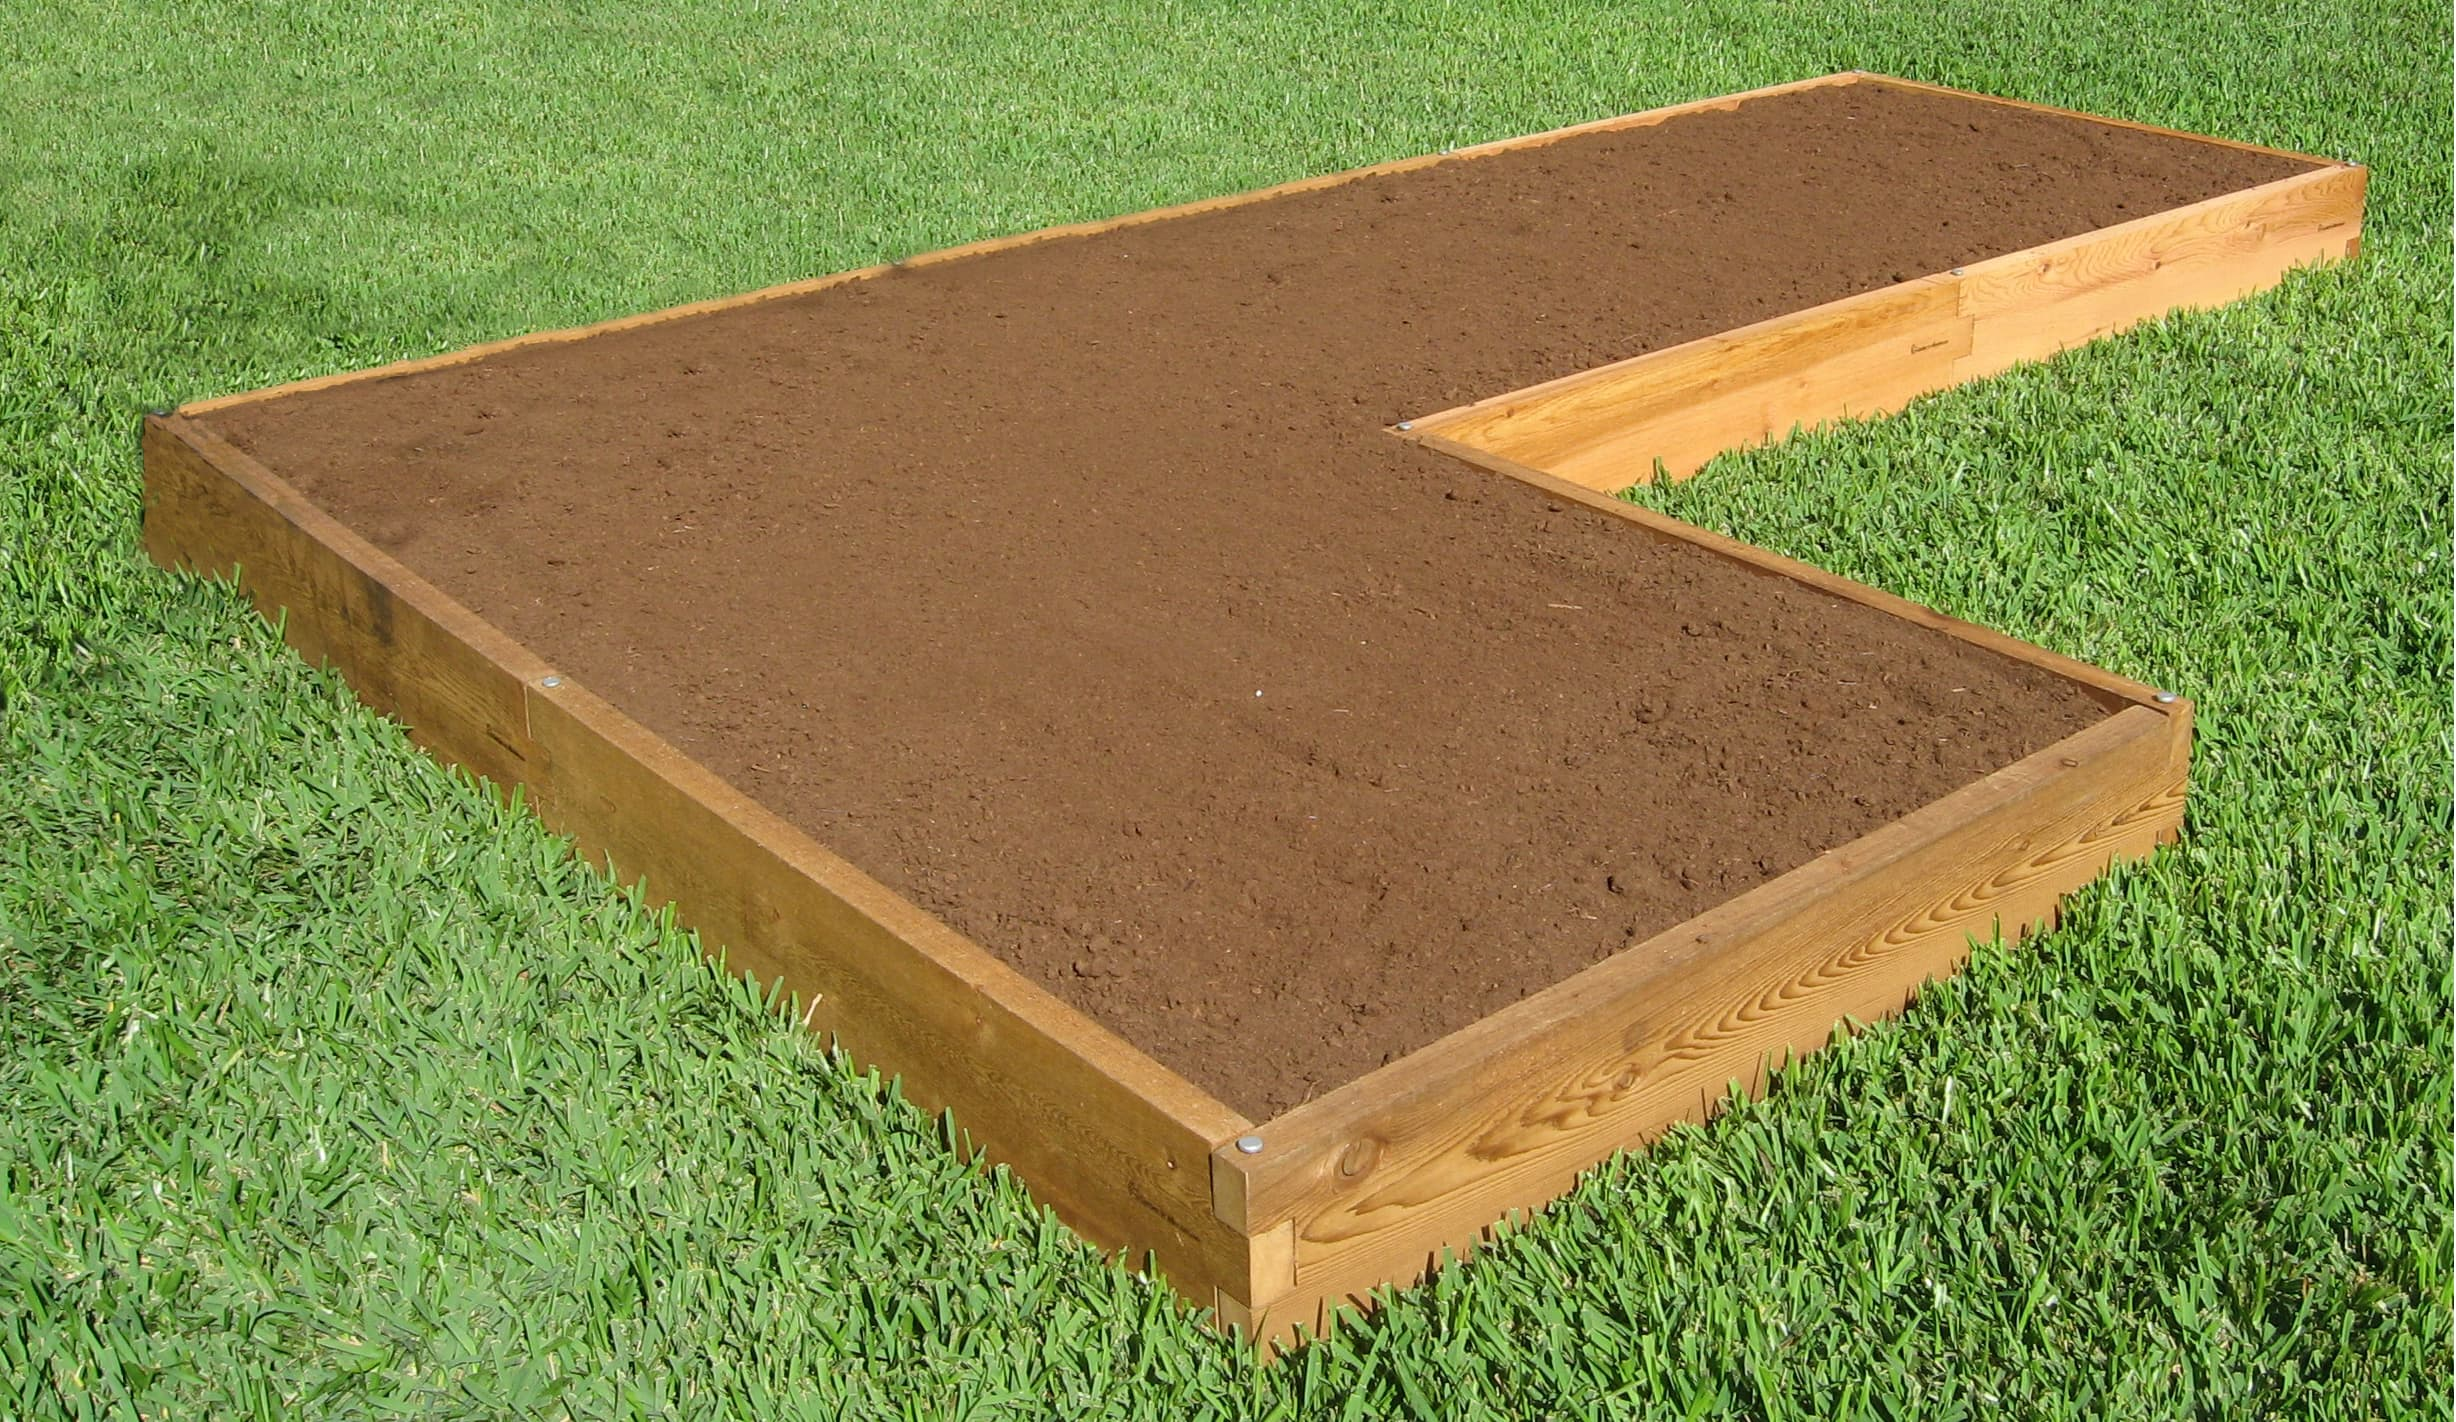 L Shaped Raised Garden Bed 4x16 Raised Garden Bed